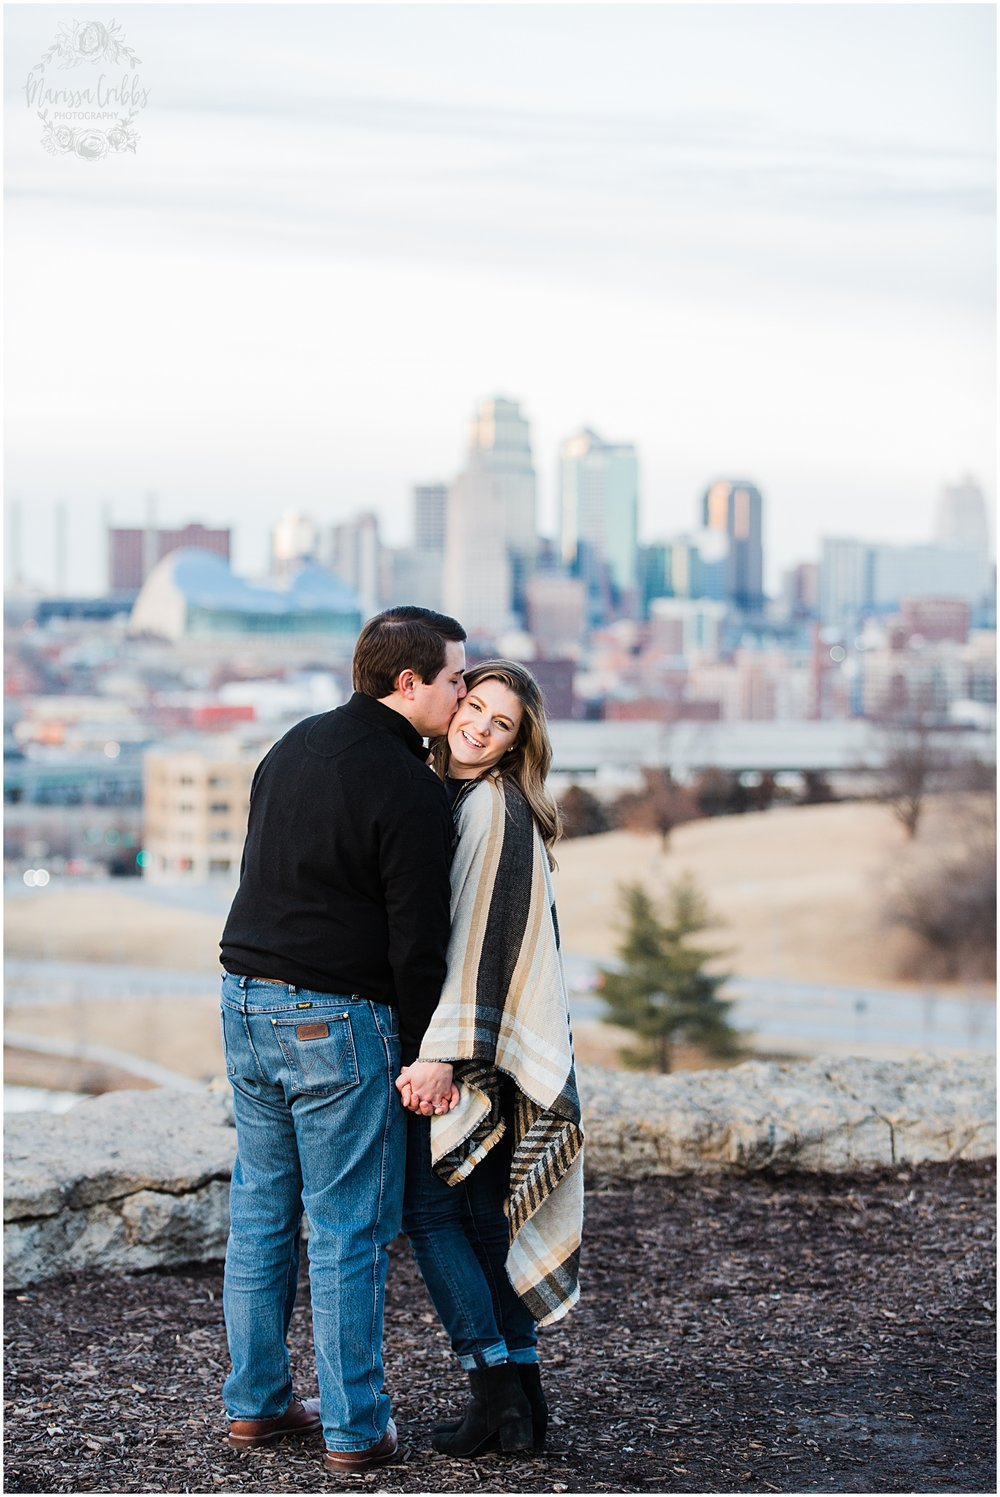 CAROLINE & JOE ENGAGEMENT FINAL | MARISSA CRIBBS PHOTOGRAPHY_4206.jpg